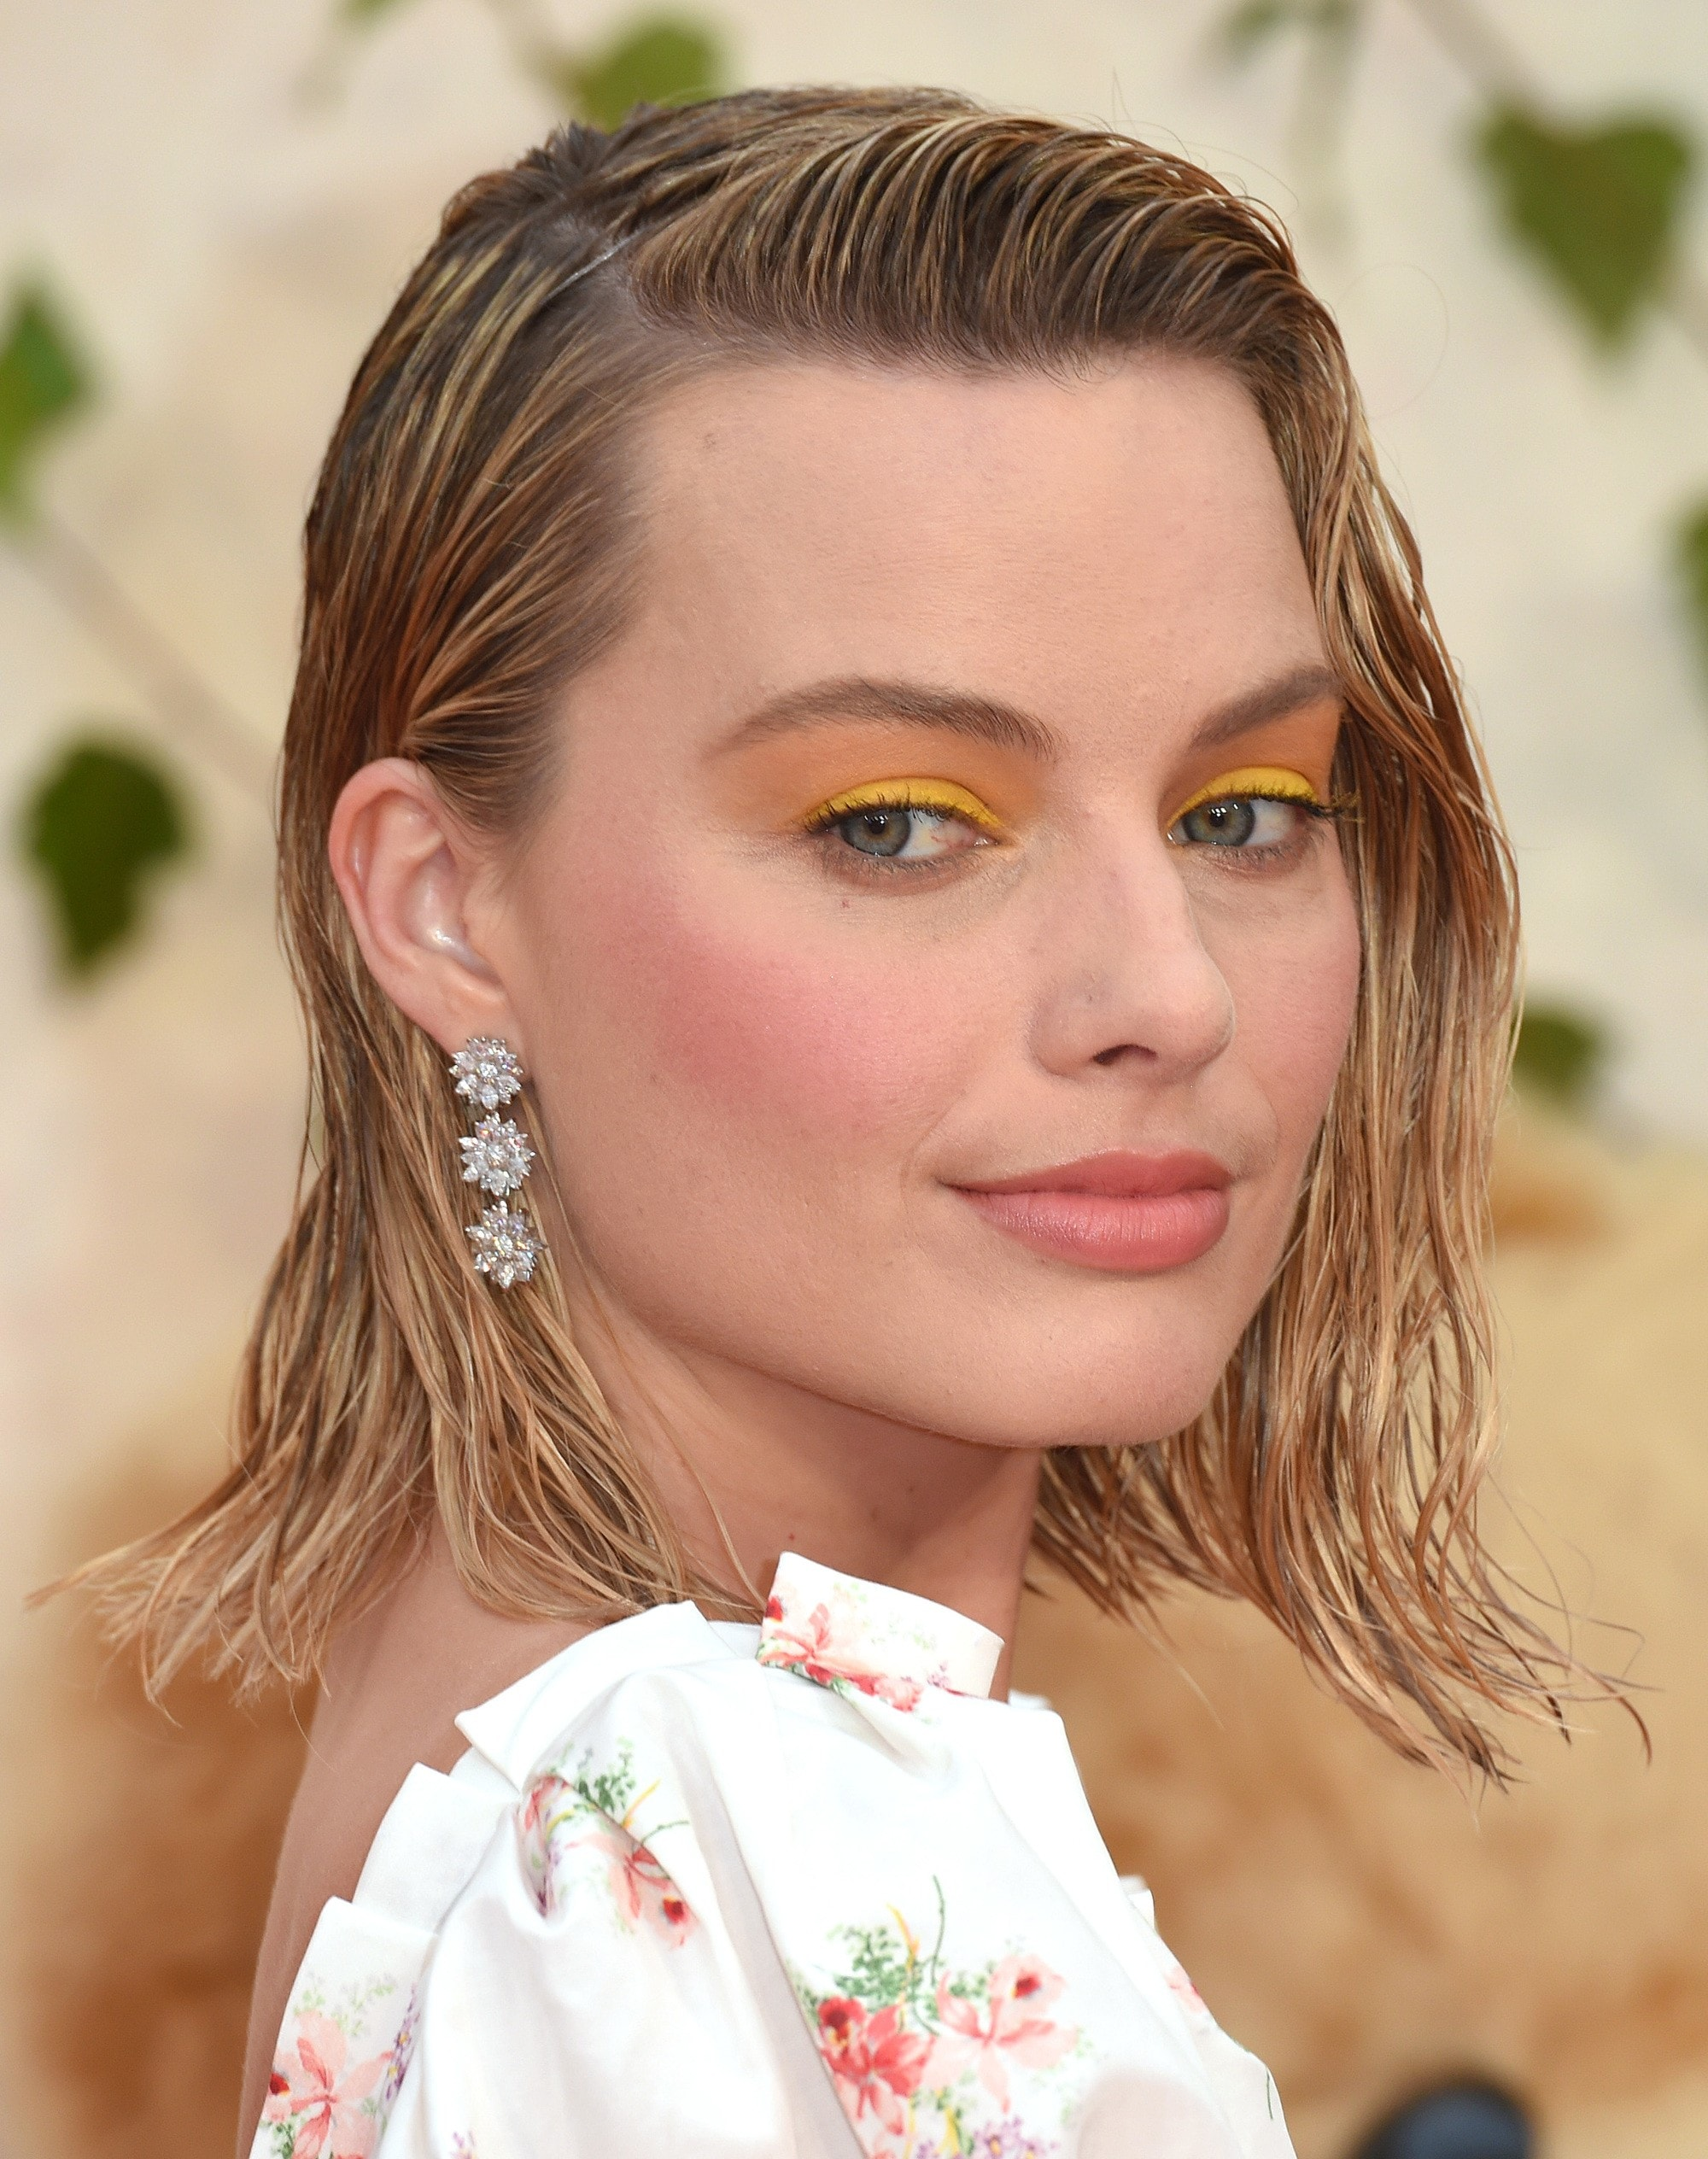 margot robbie red carpet event with blonde wavy wet look bob hair in side-parting